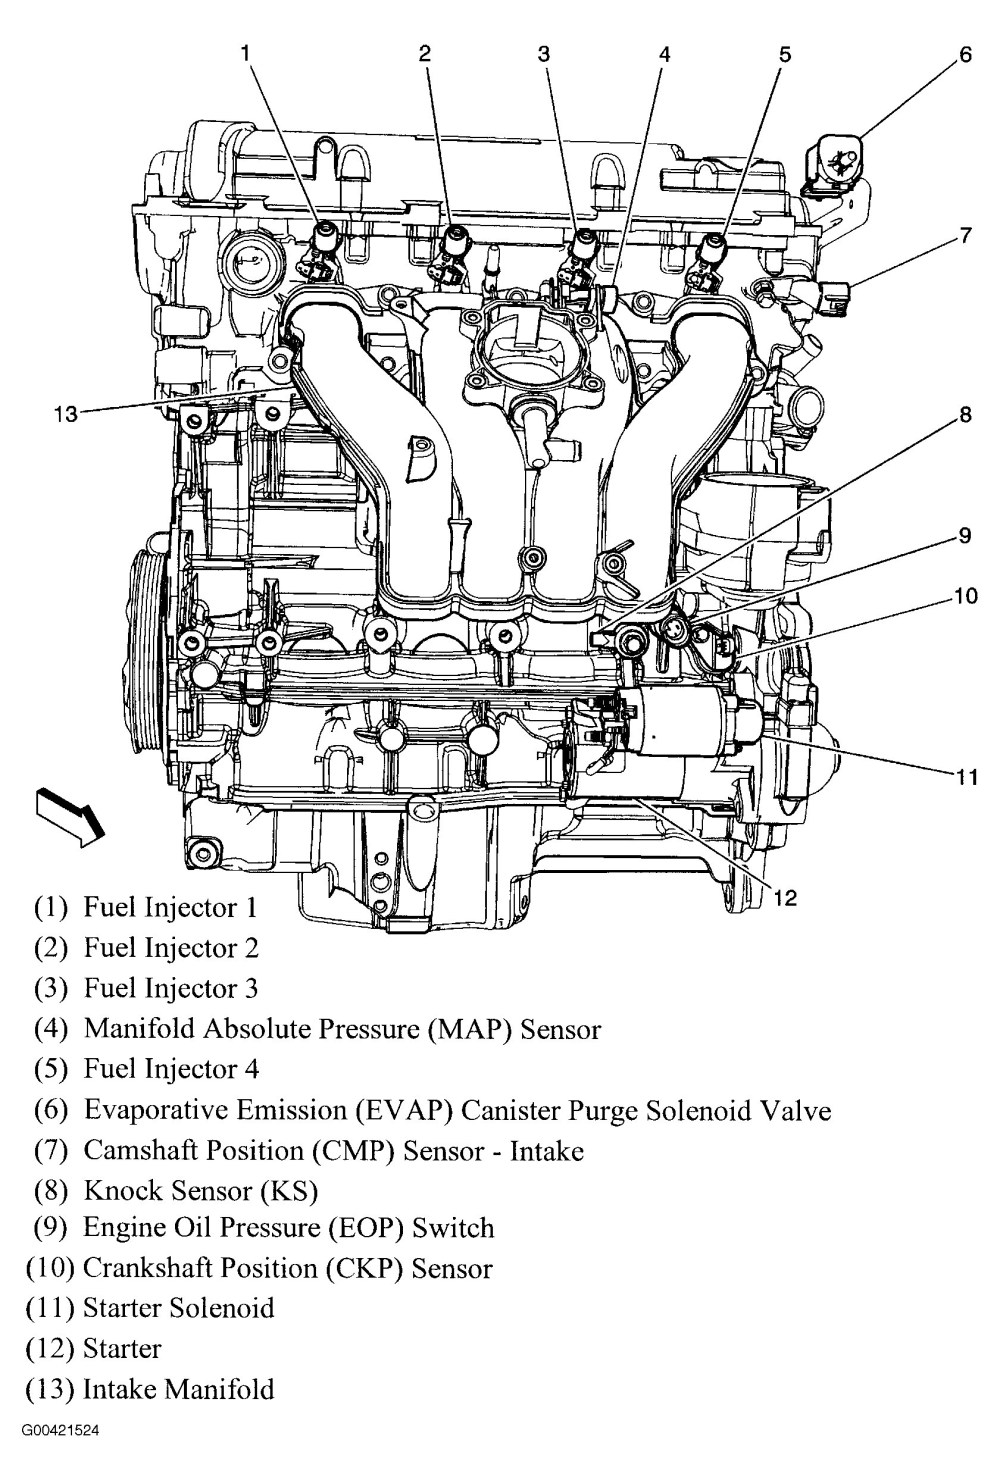 medium resolution of 2007 chevy trailblazer engine diagram wiring diagram toolbox 2007 chevy trailblazer fuse box diagram 2007 trailblazer